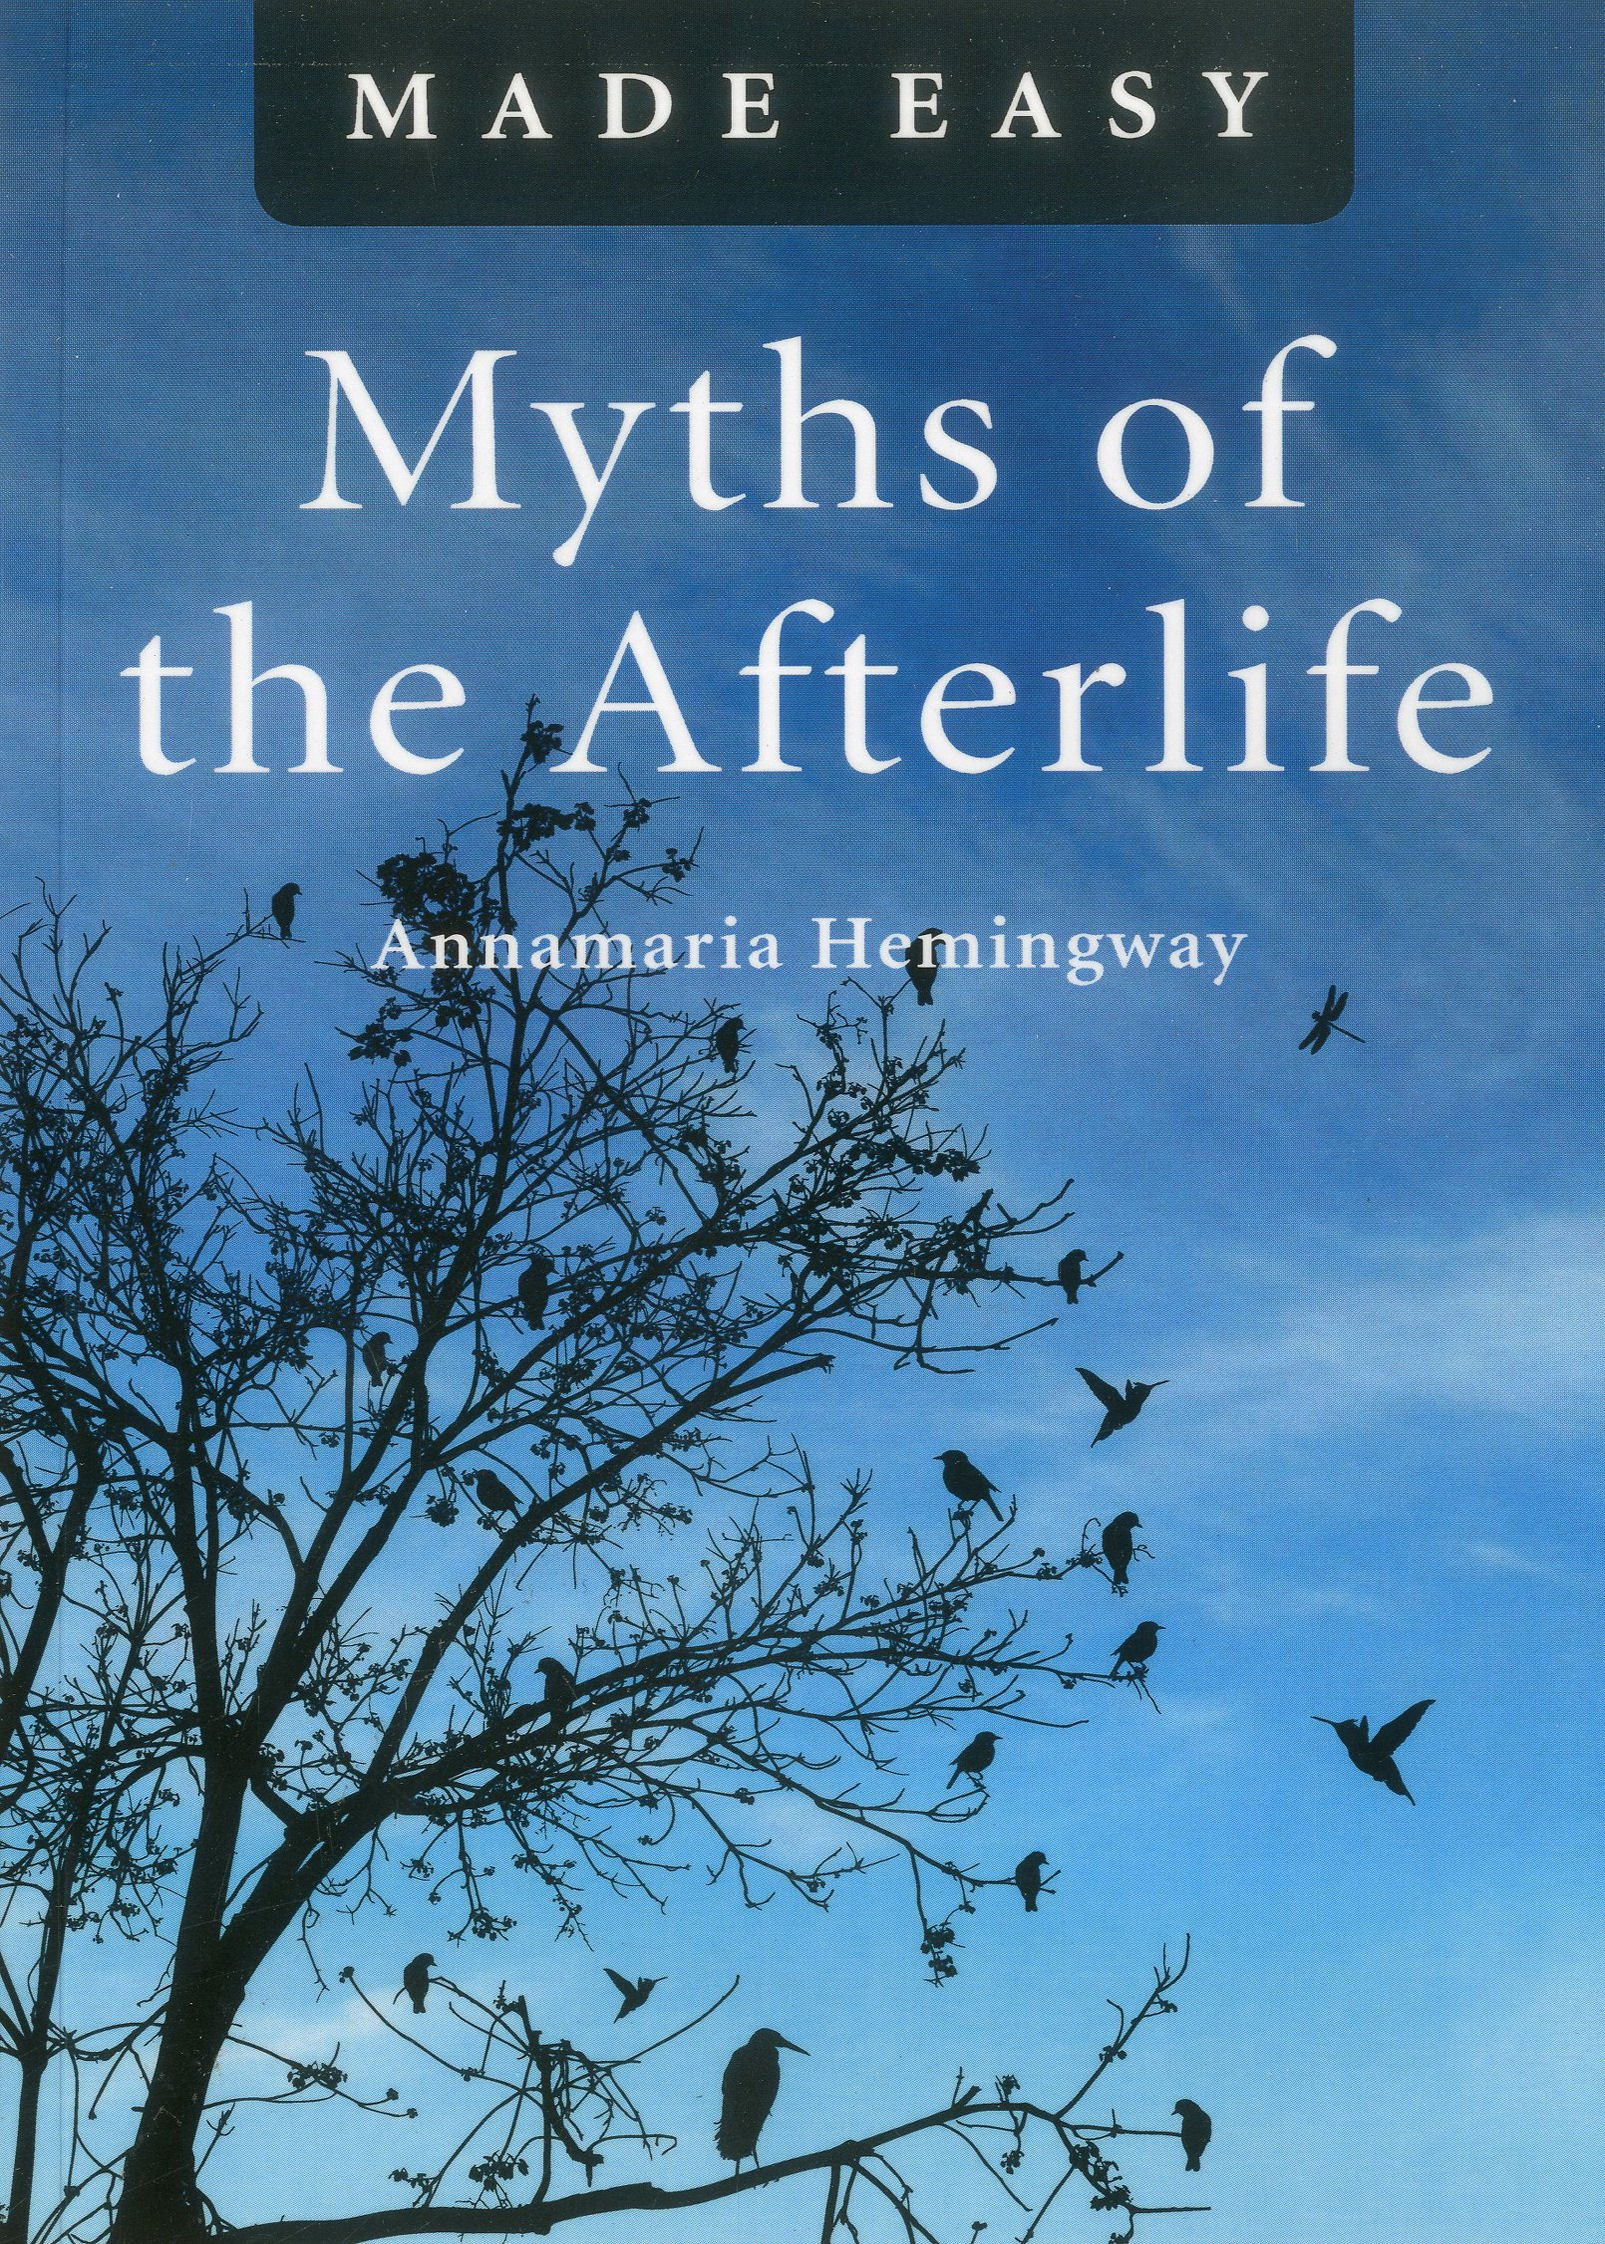 Myths of the Afterlife Made Easy